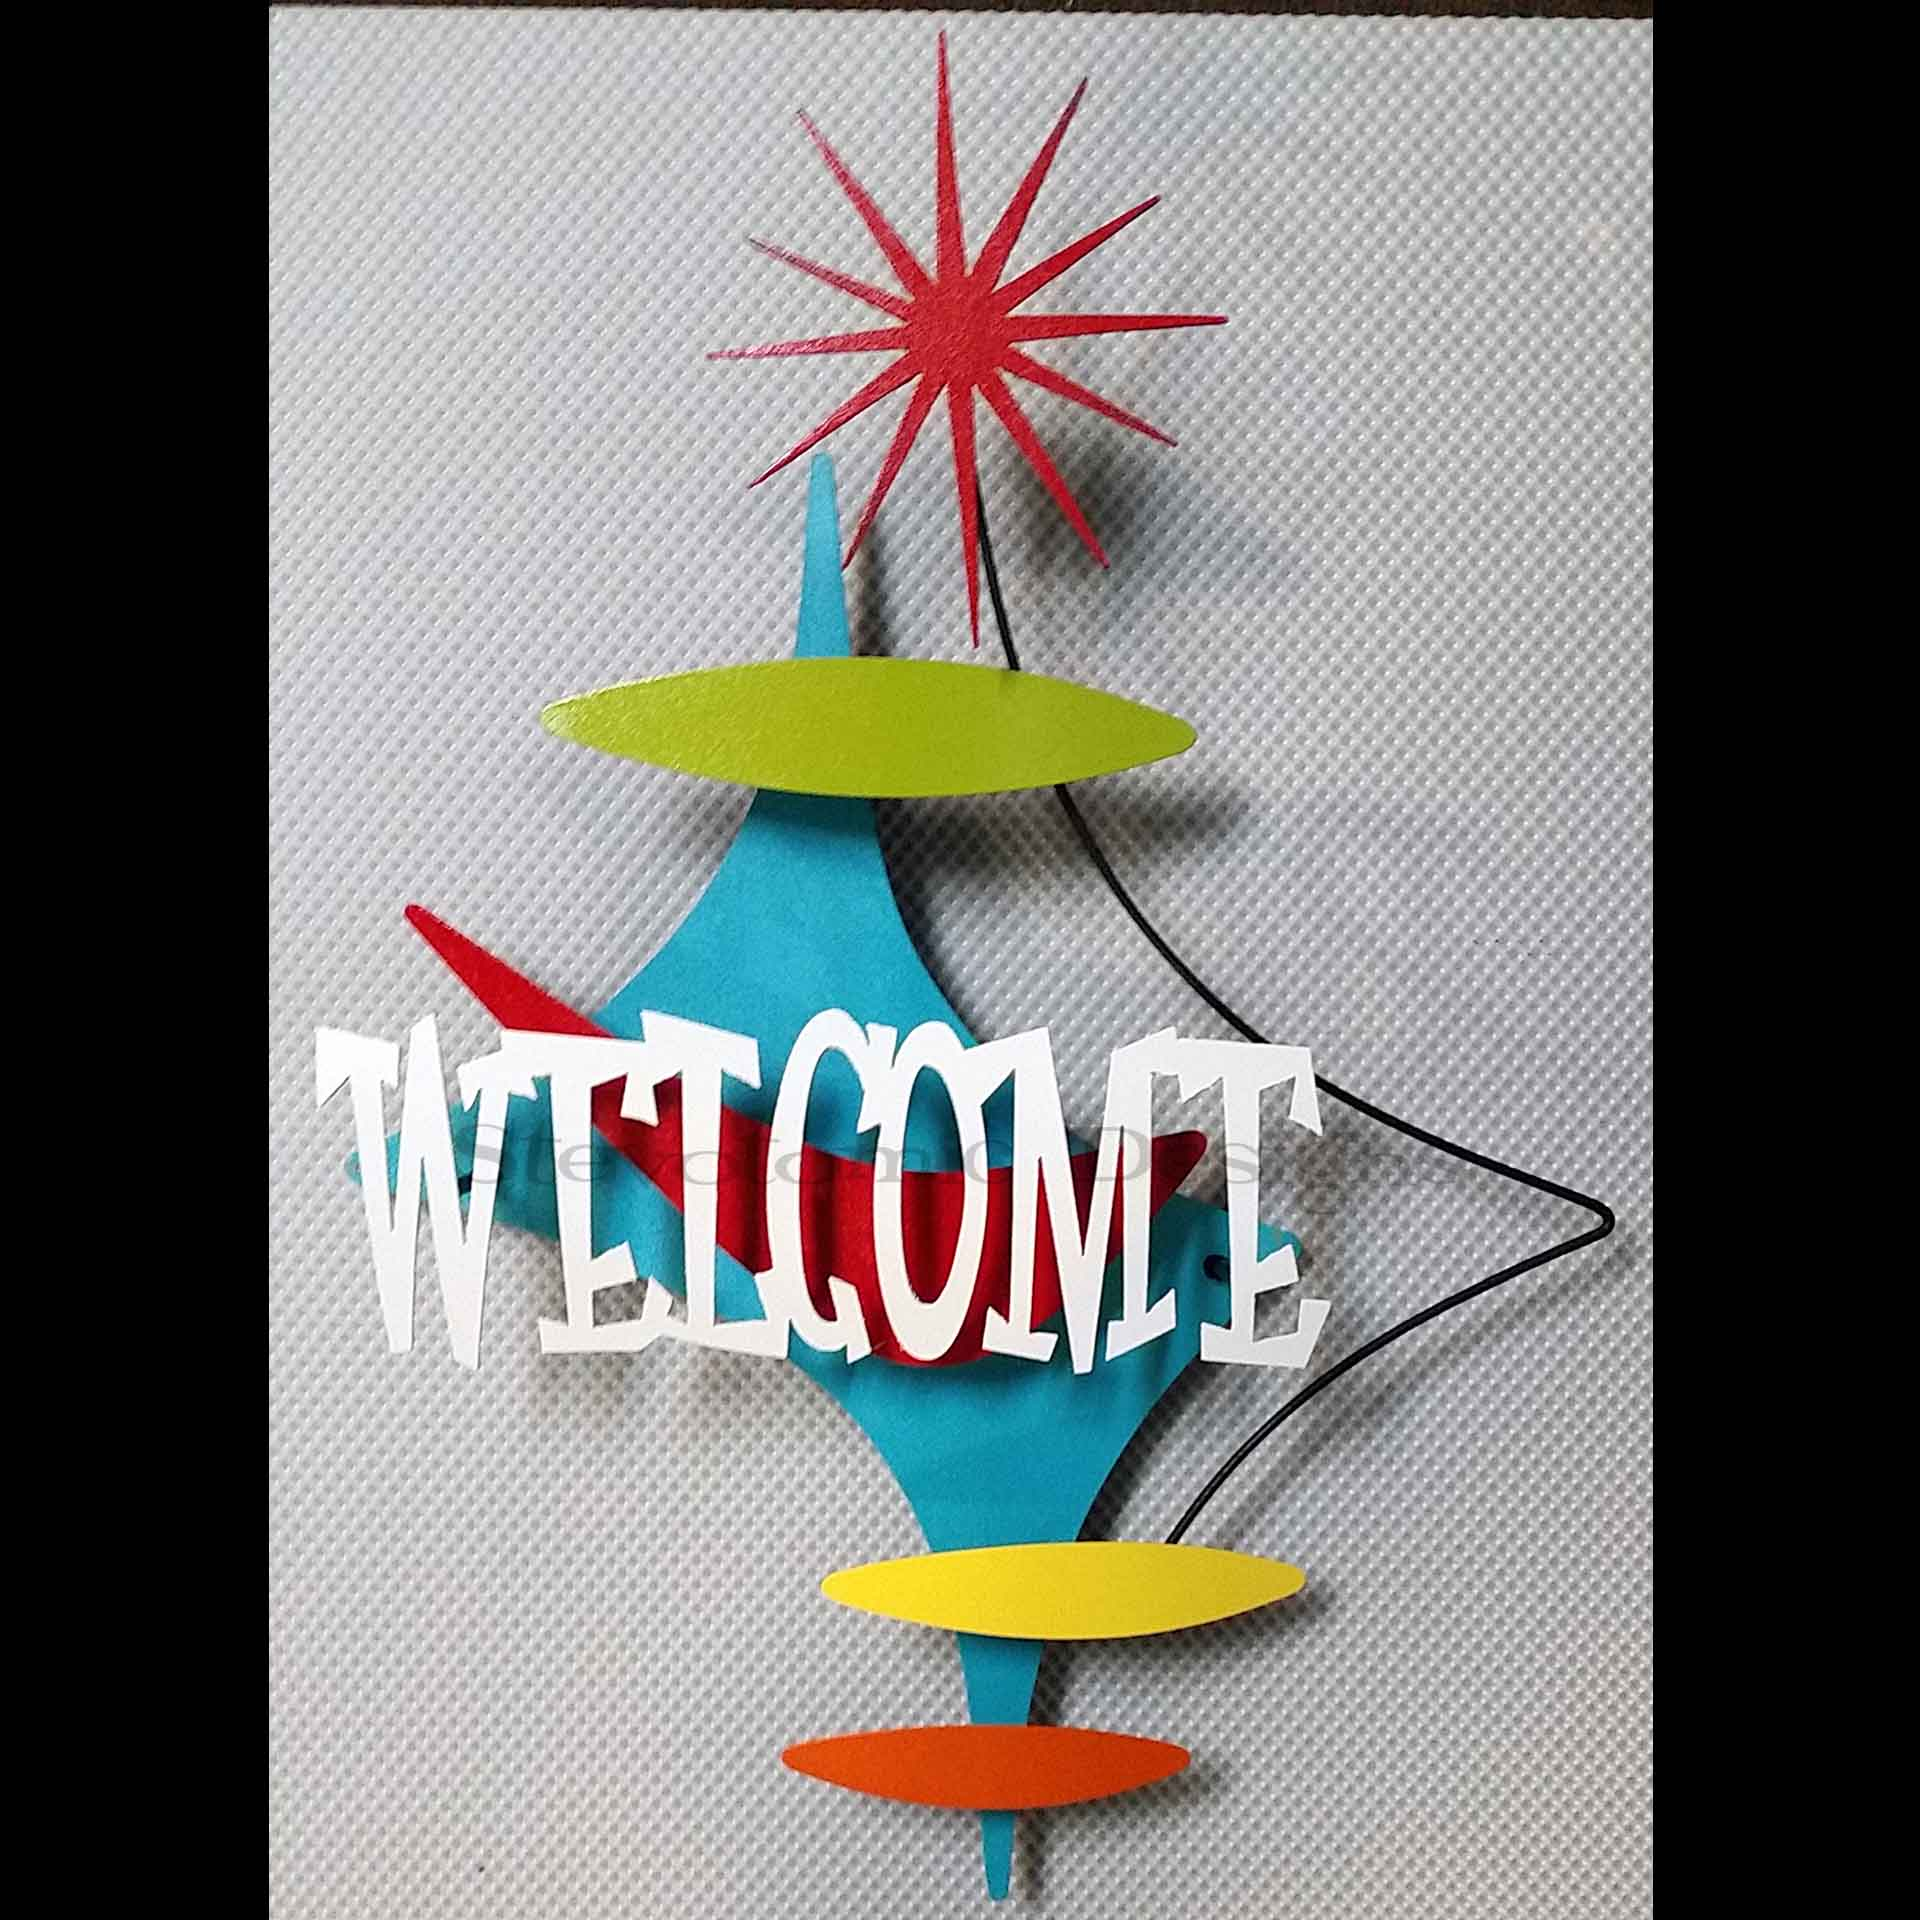 WELCOME-017-0009